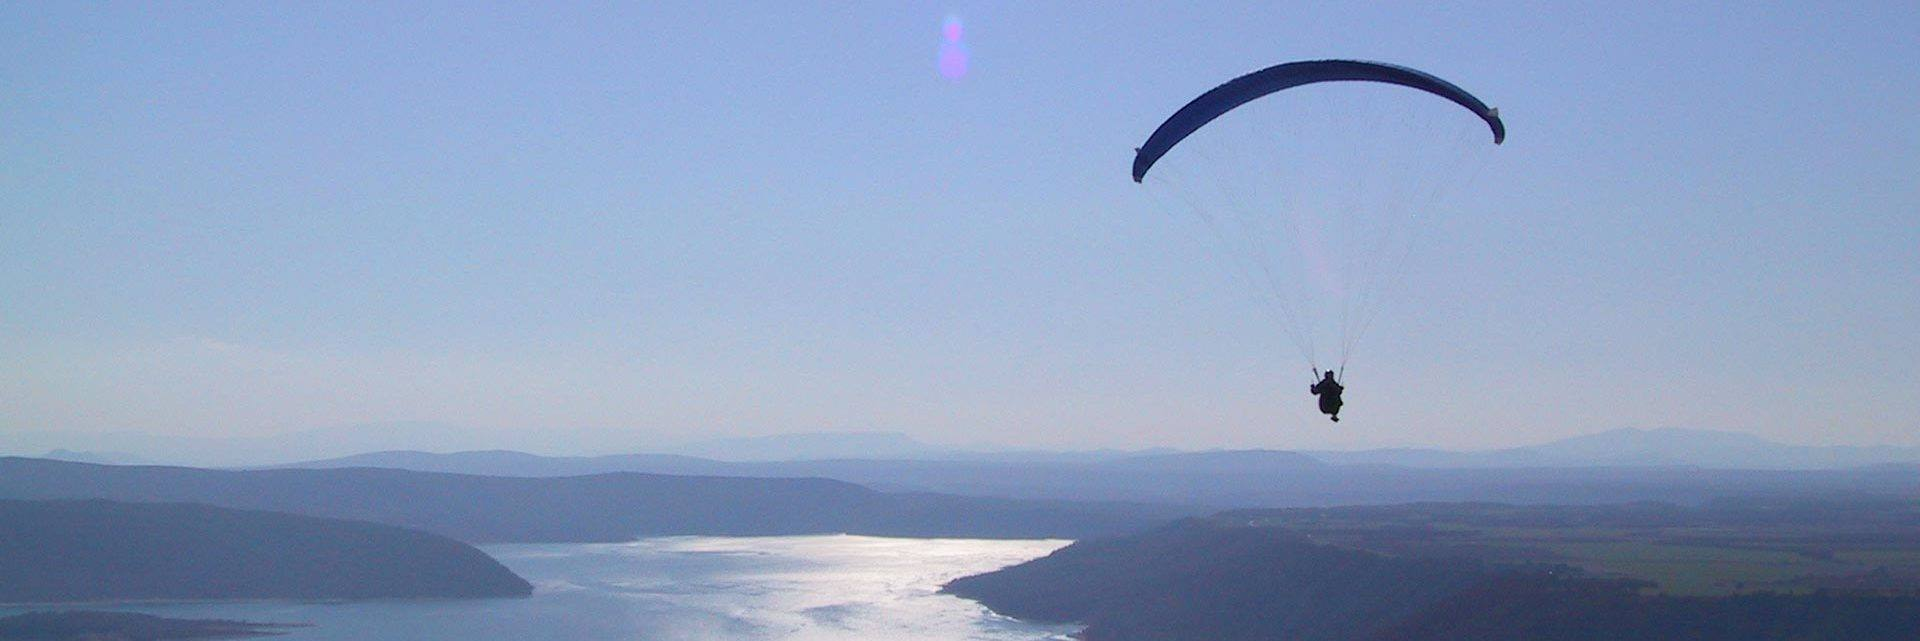 Para-gliding over the Lake of Sainte Croix